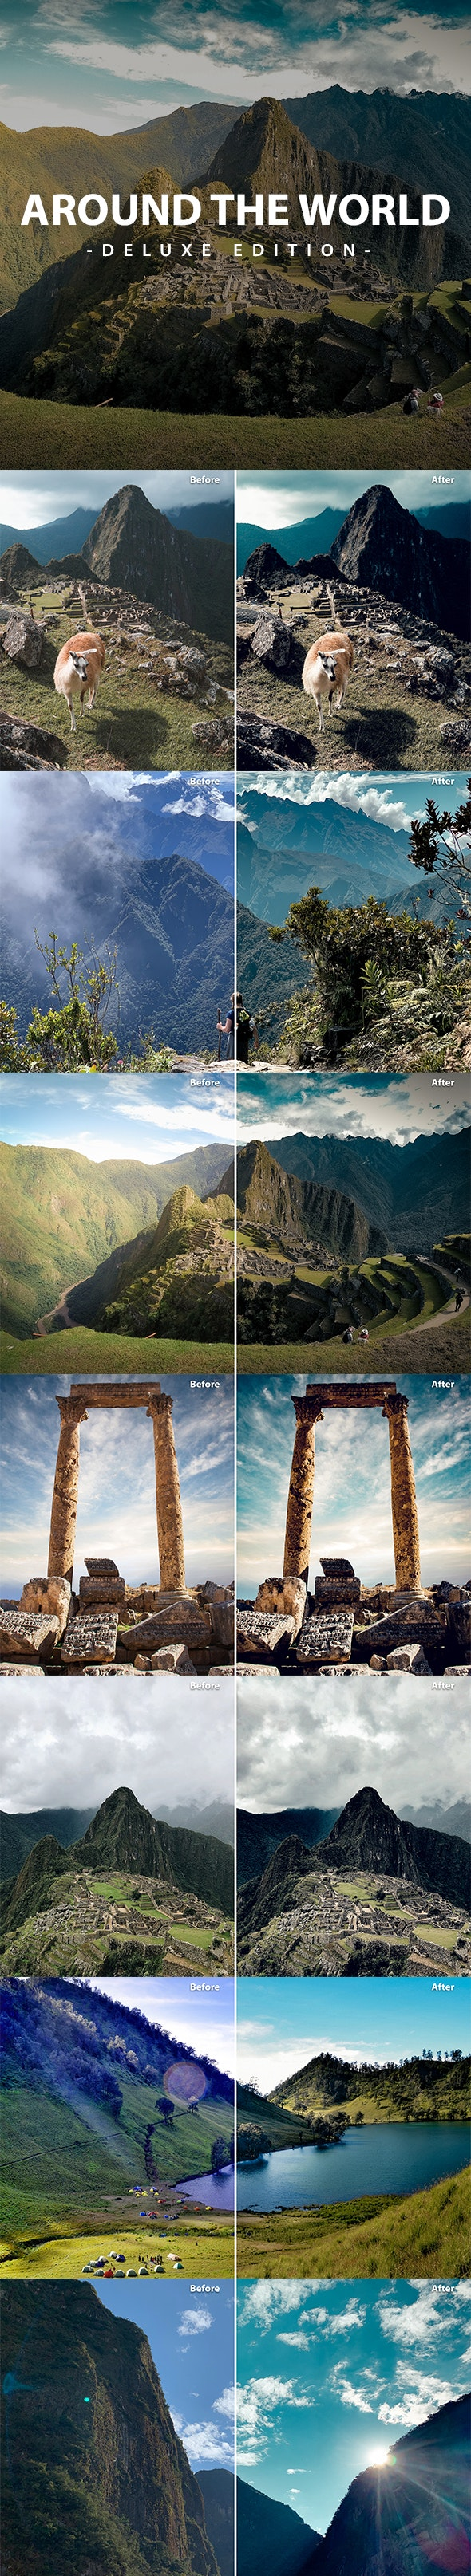 Around The World Deluxe Edition For Mobile and PC - Landscape Lightroom Presets